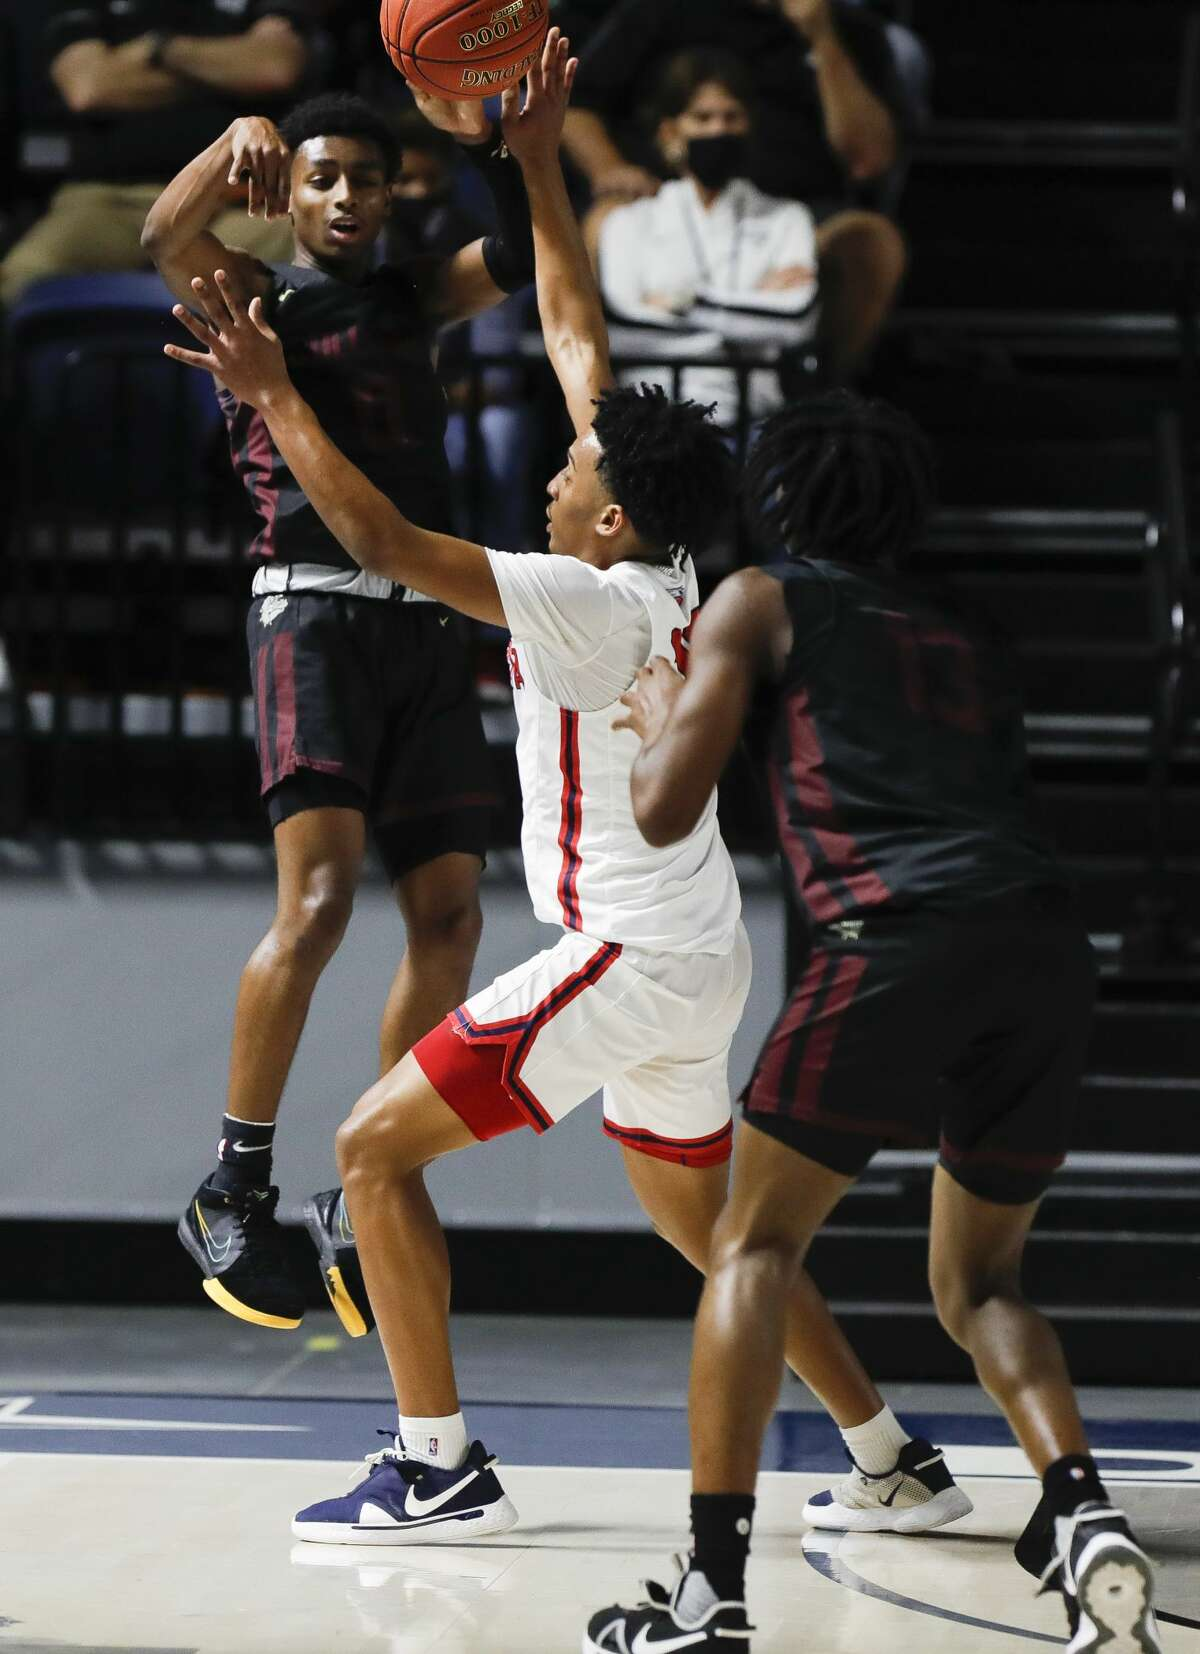 Summer Creek shooting guard Jaylon Johnson (0) makes a pass under pressure from Atascocita shooting guard Christian Asahby (11) to point guard Steven Sawyer (13) at Delmar Fieldhouse, Friday, March 5, 2021, in Houston.